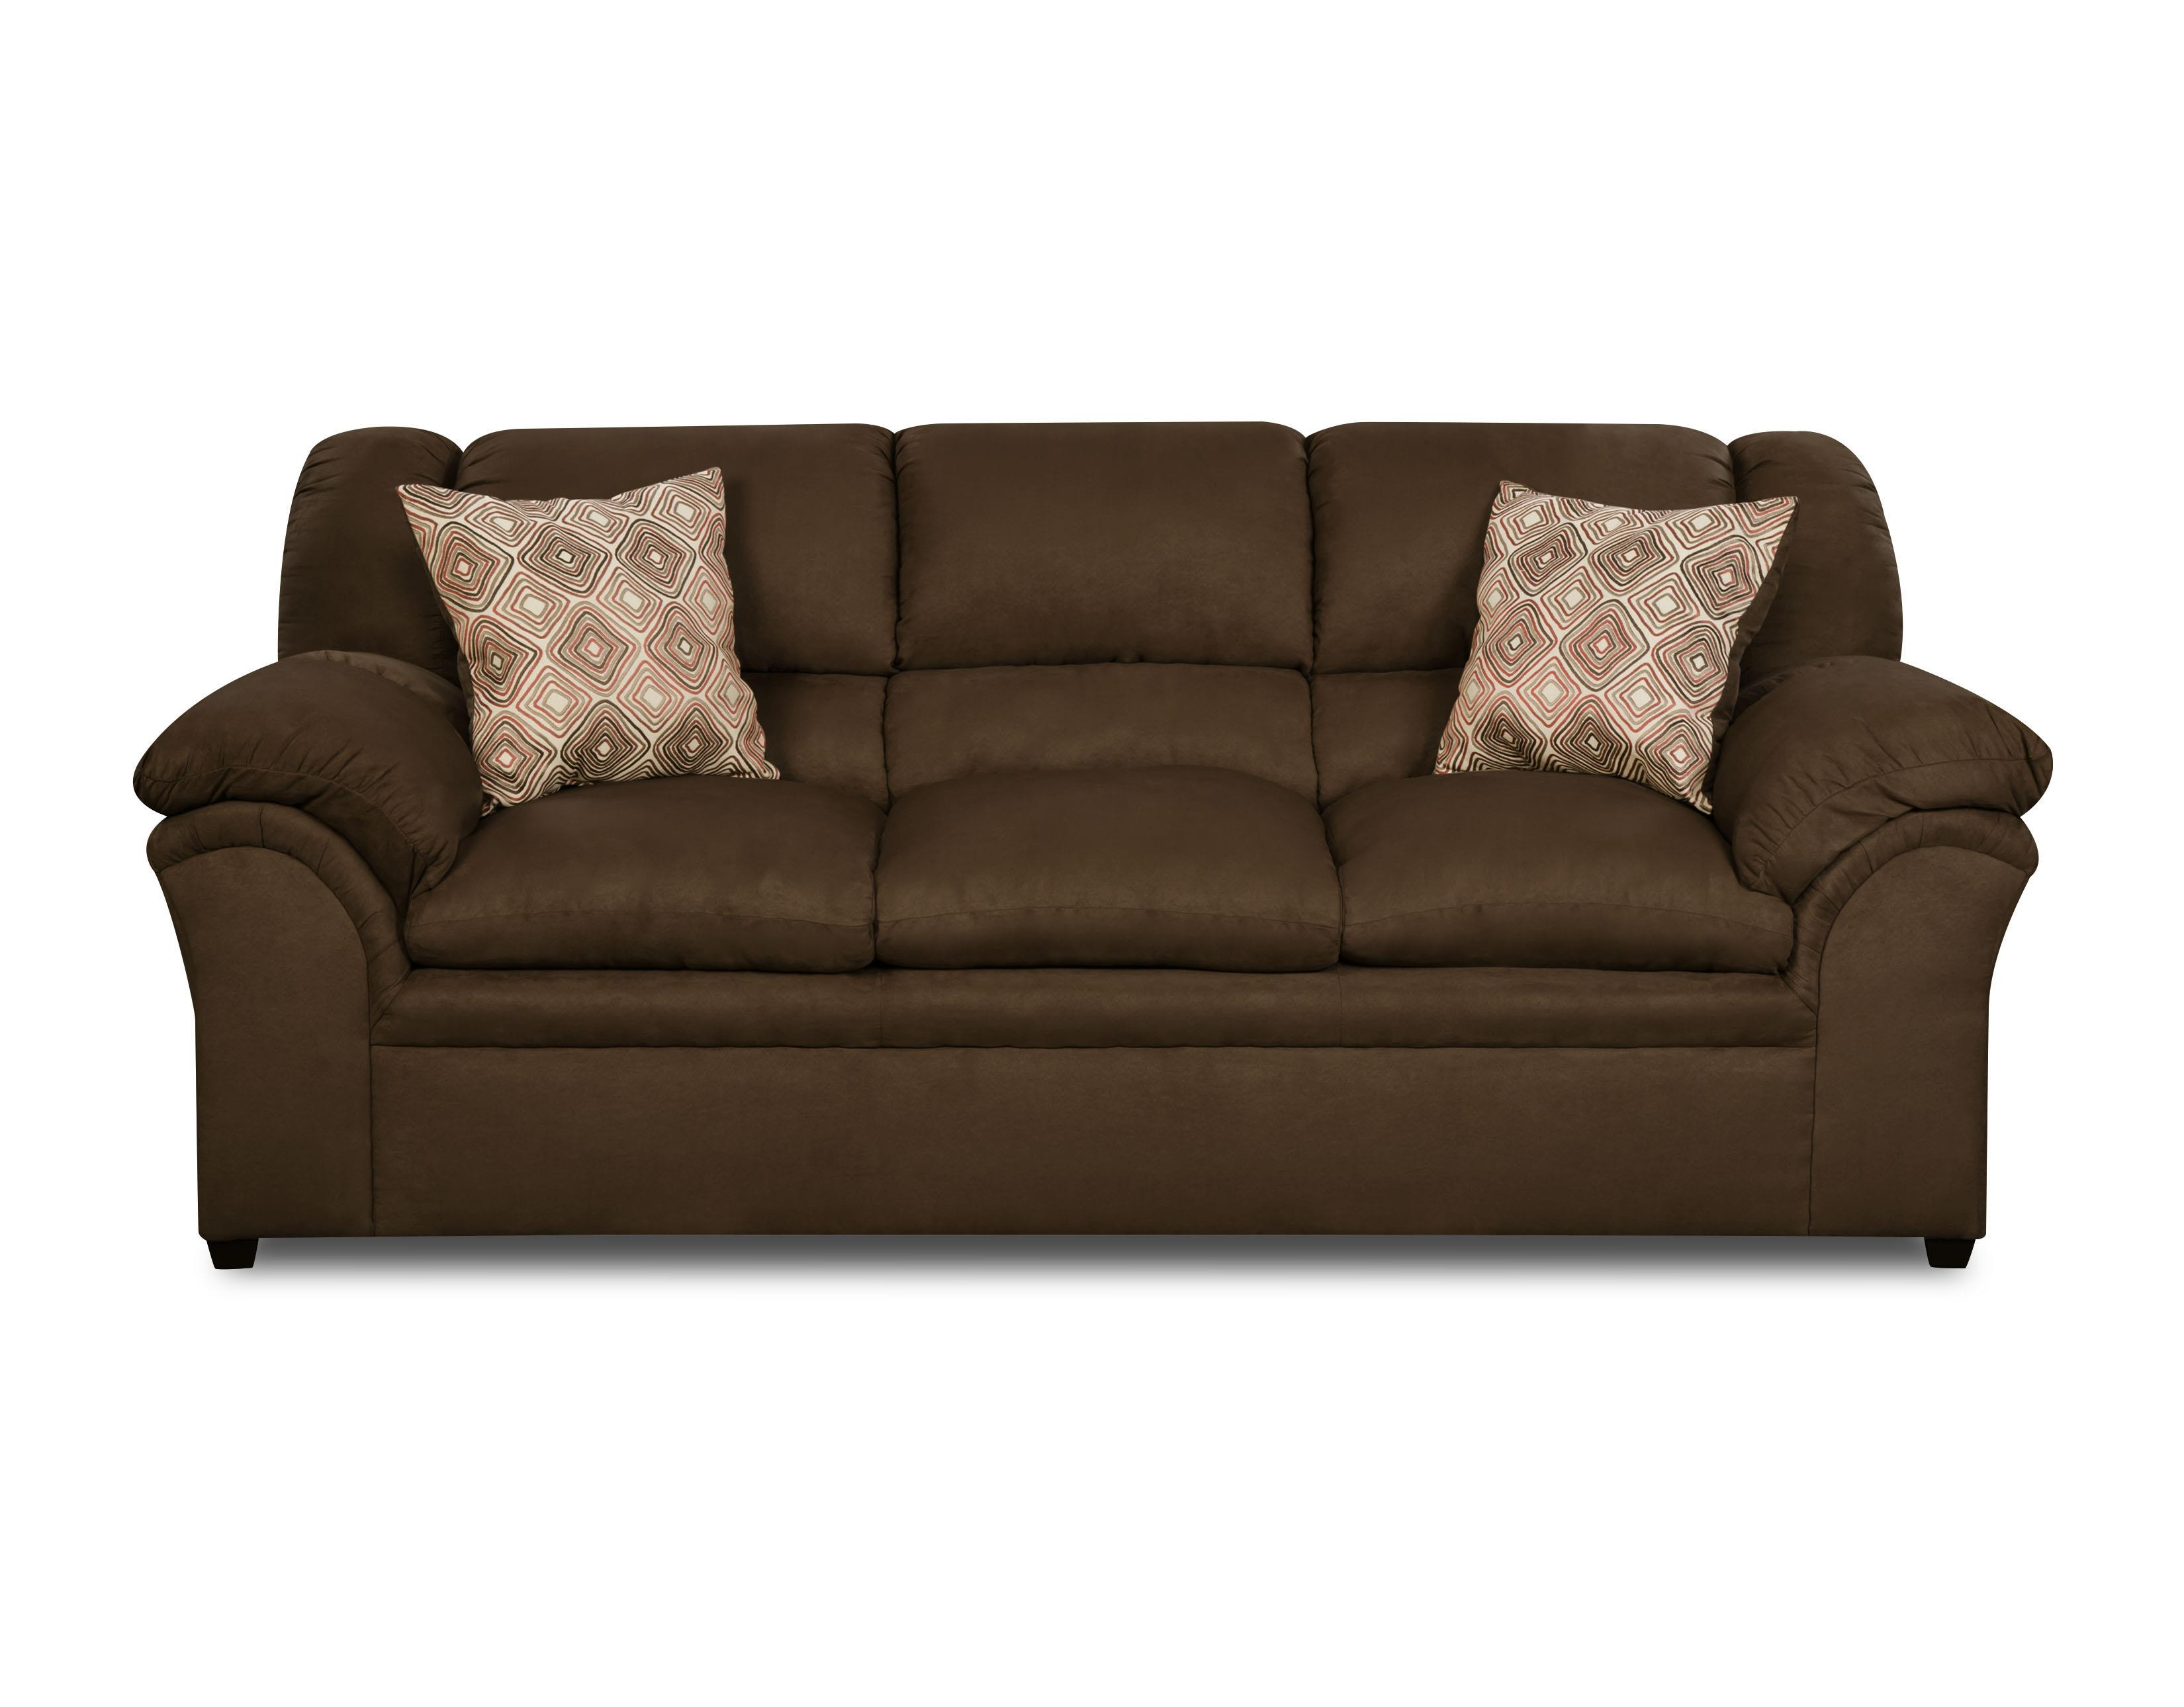 United Furniture Industries 1720 Sofa Furniture Fair North